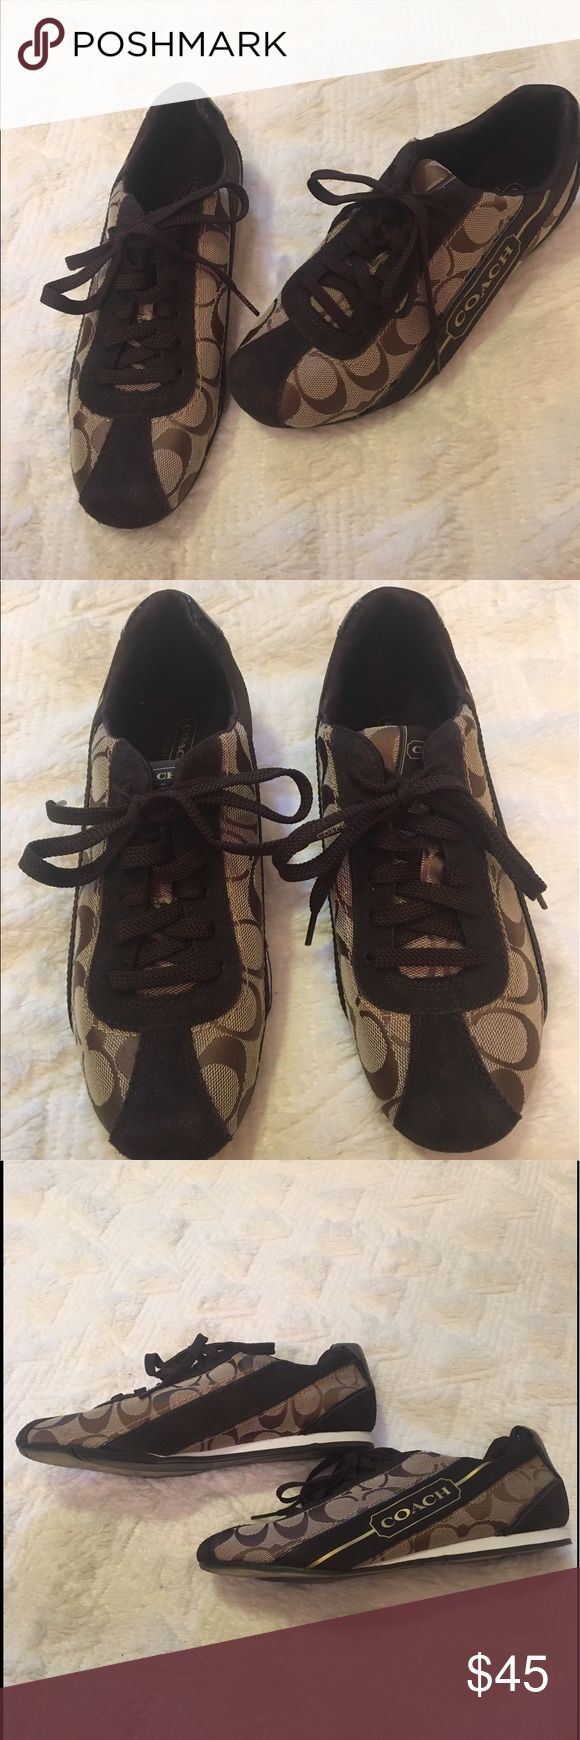 Coach tennis shoes! ✨ Beautiful and comfortable Coach tennis shoes! Perfect for everyday wear! Light used yet in perfect condition! Let me know if you have any questions! Make me an offer! ✨❤️ Coach Shoes Sneakers